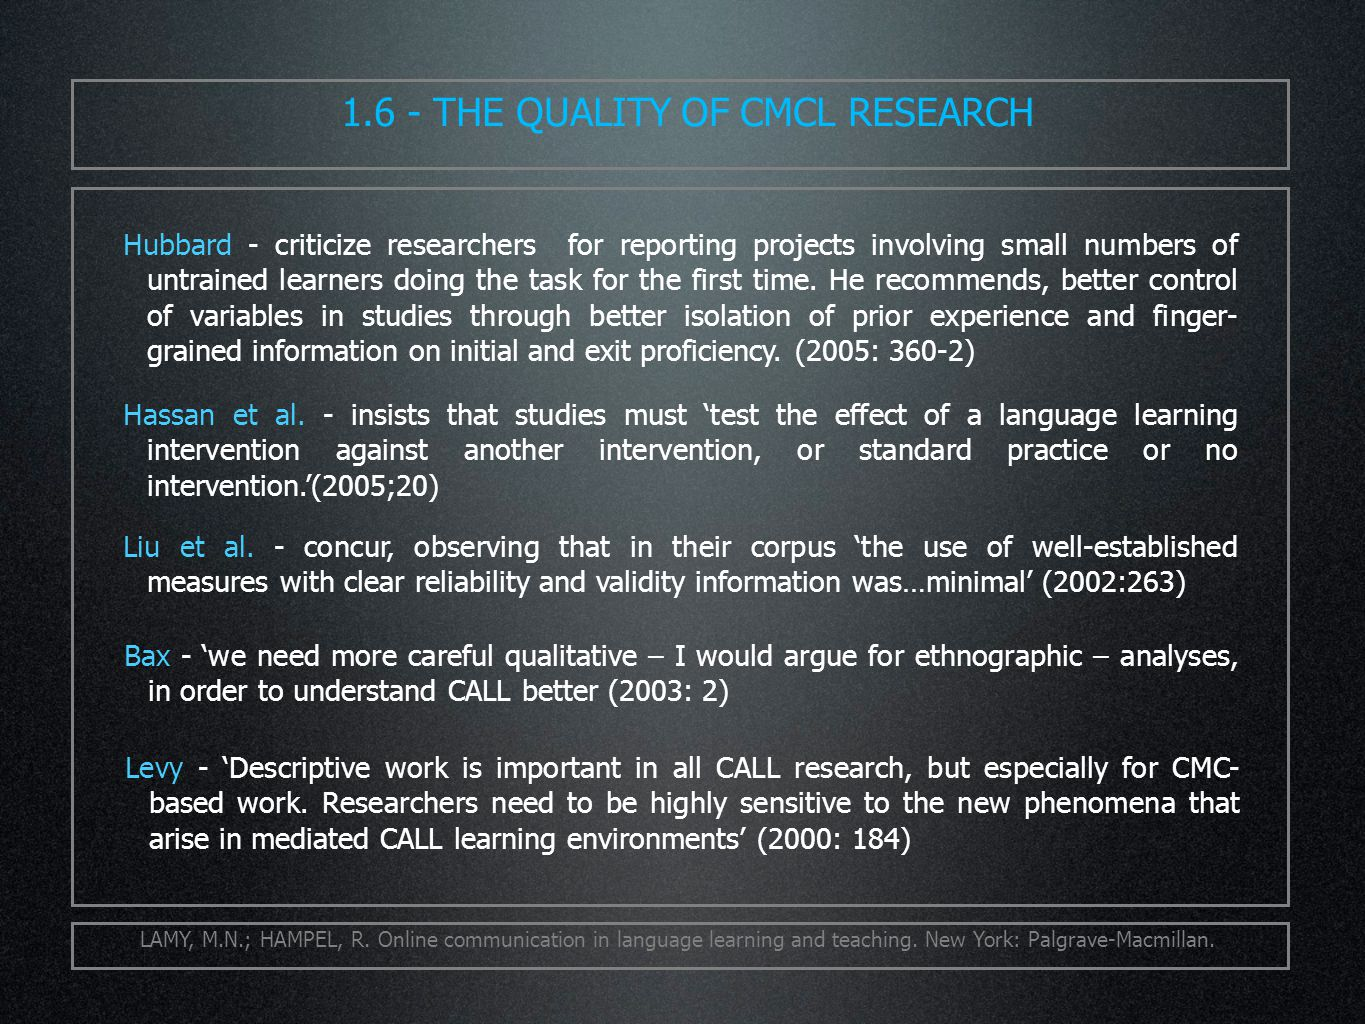 LAMY, M.N.; HAMPEL, R. Online communication in language learning and teaching.